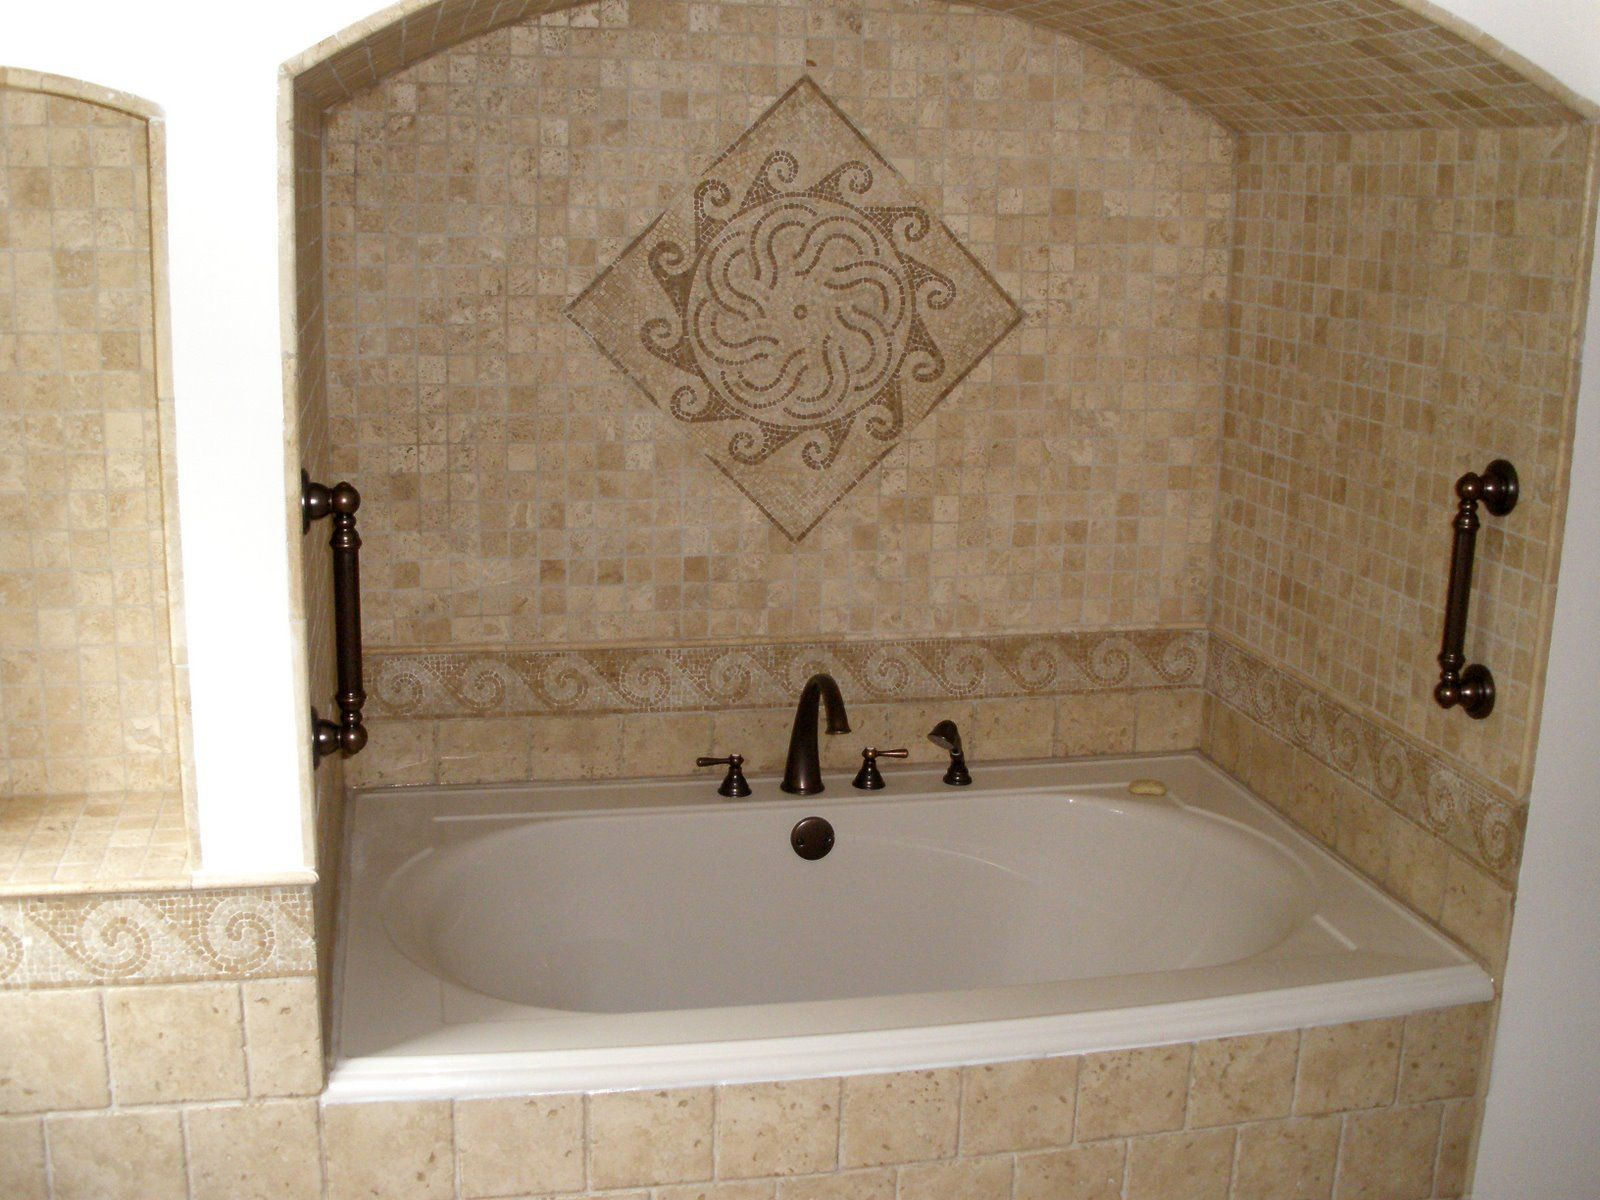 Bathroom tile design gallery images of bathrooms shower Bathroom tiles design photos